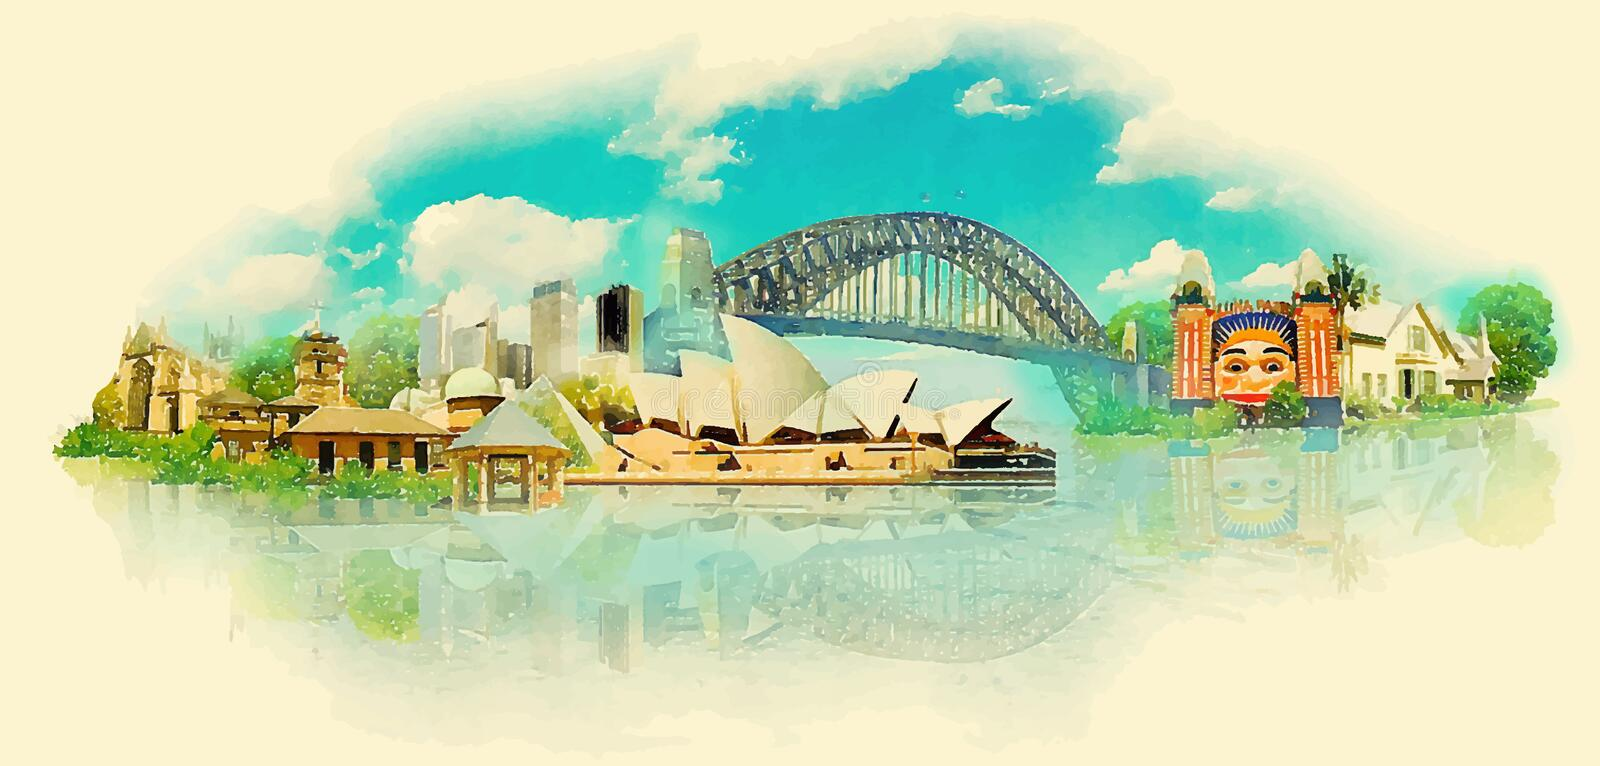 sydney illustration stock